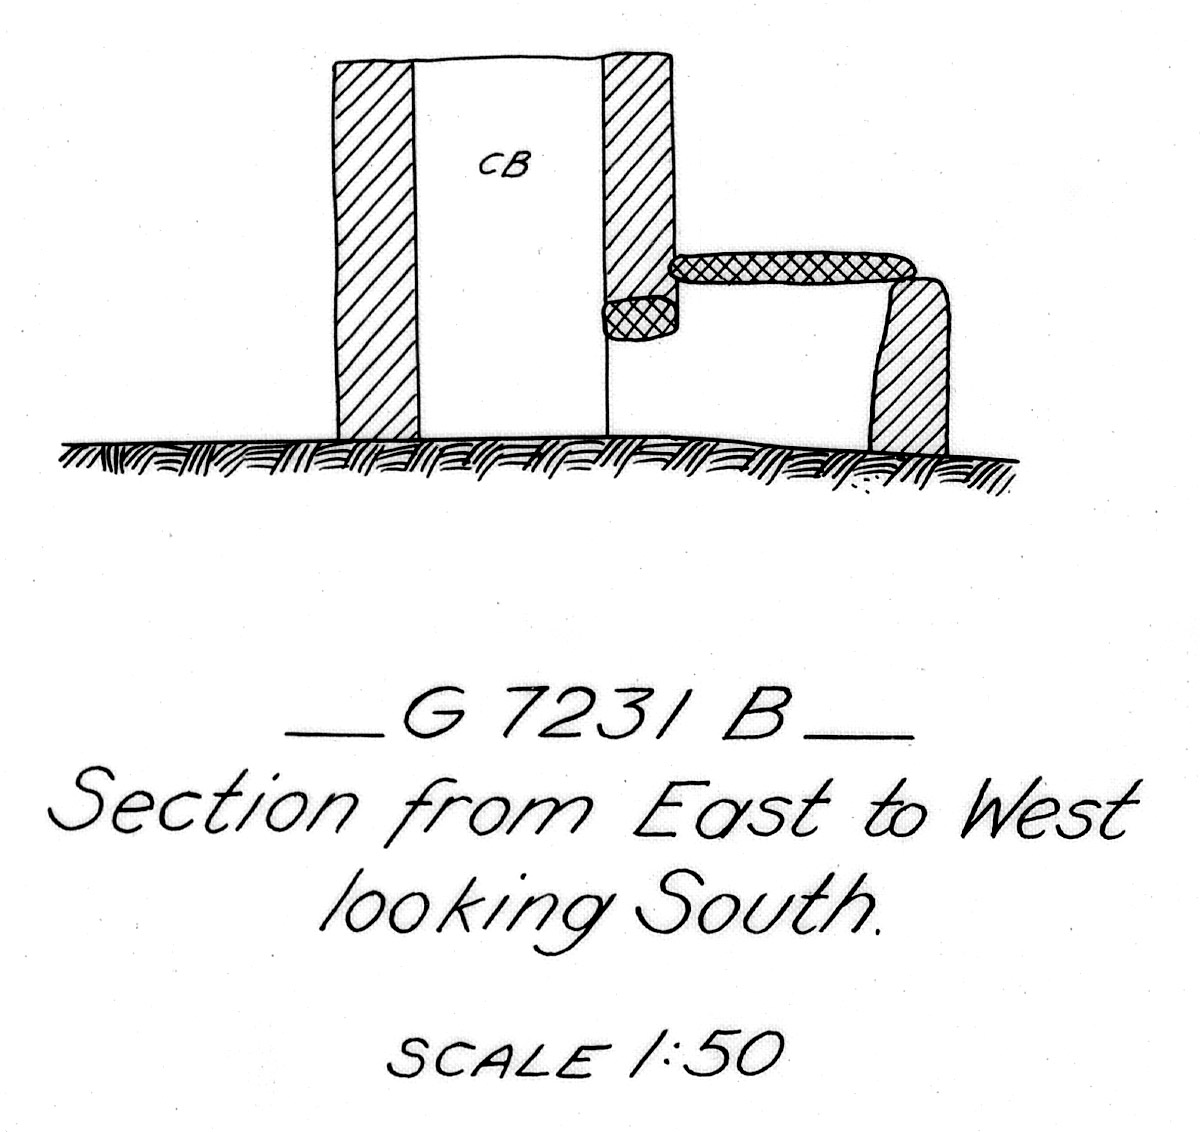 Maps and plans: G 7231, Shaft B